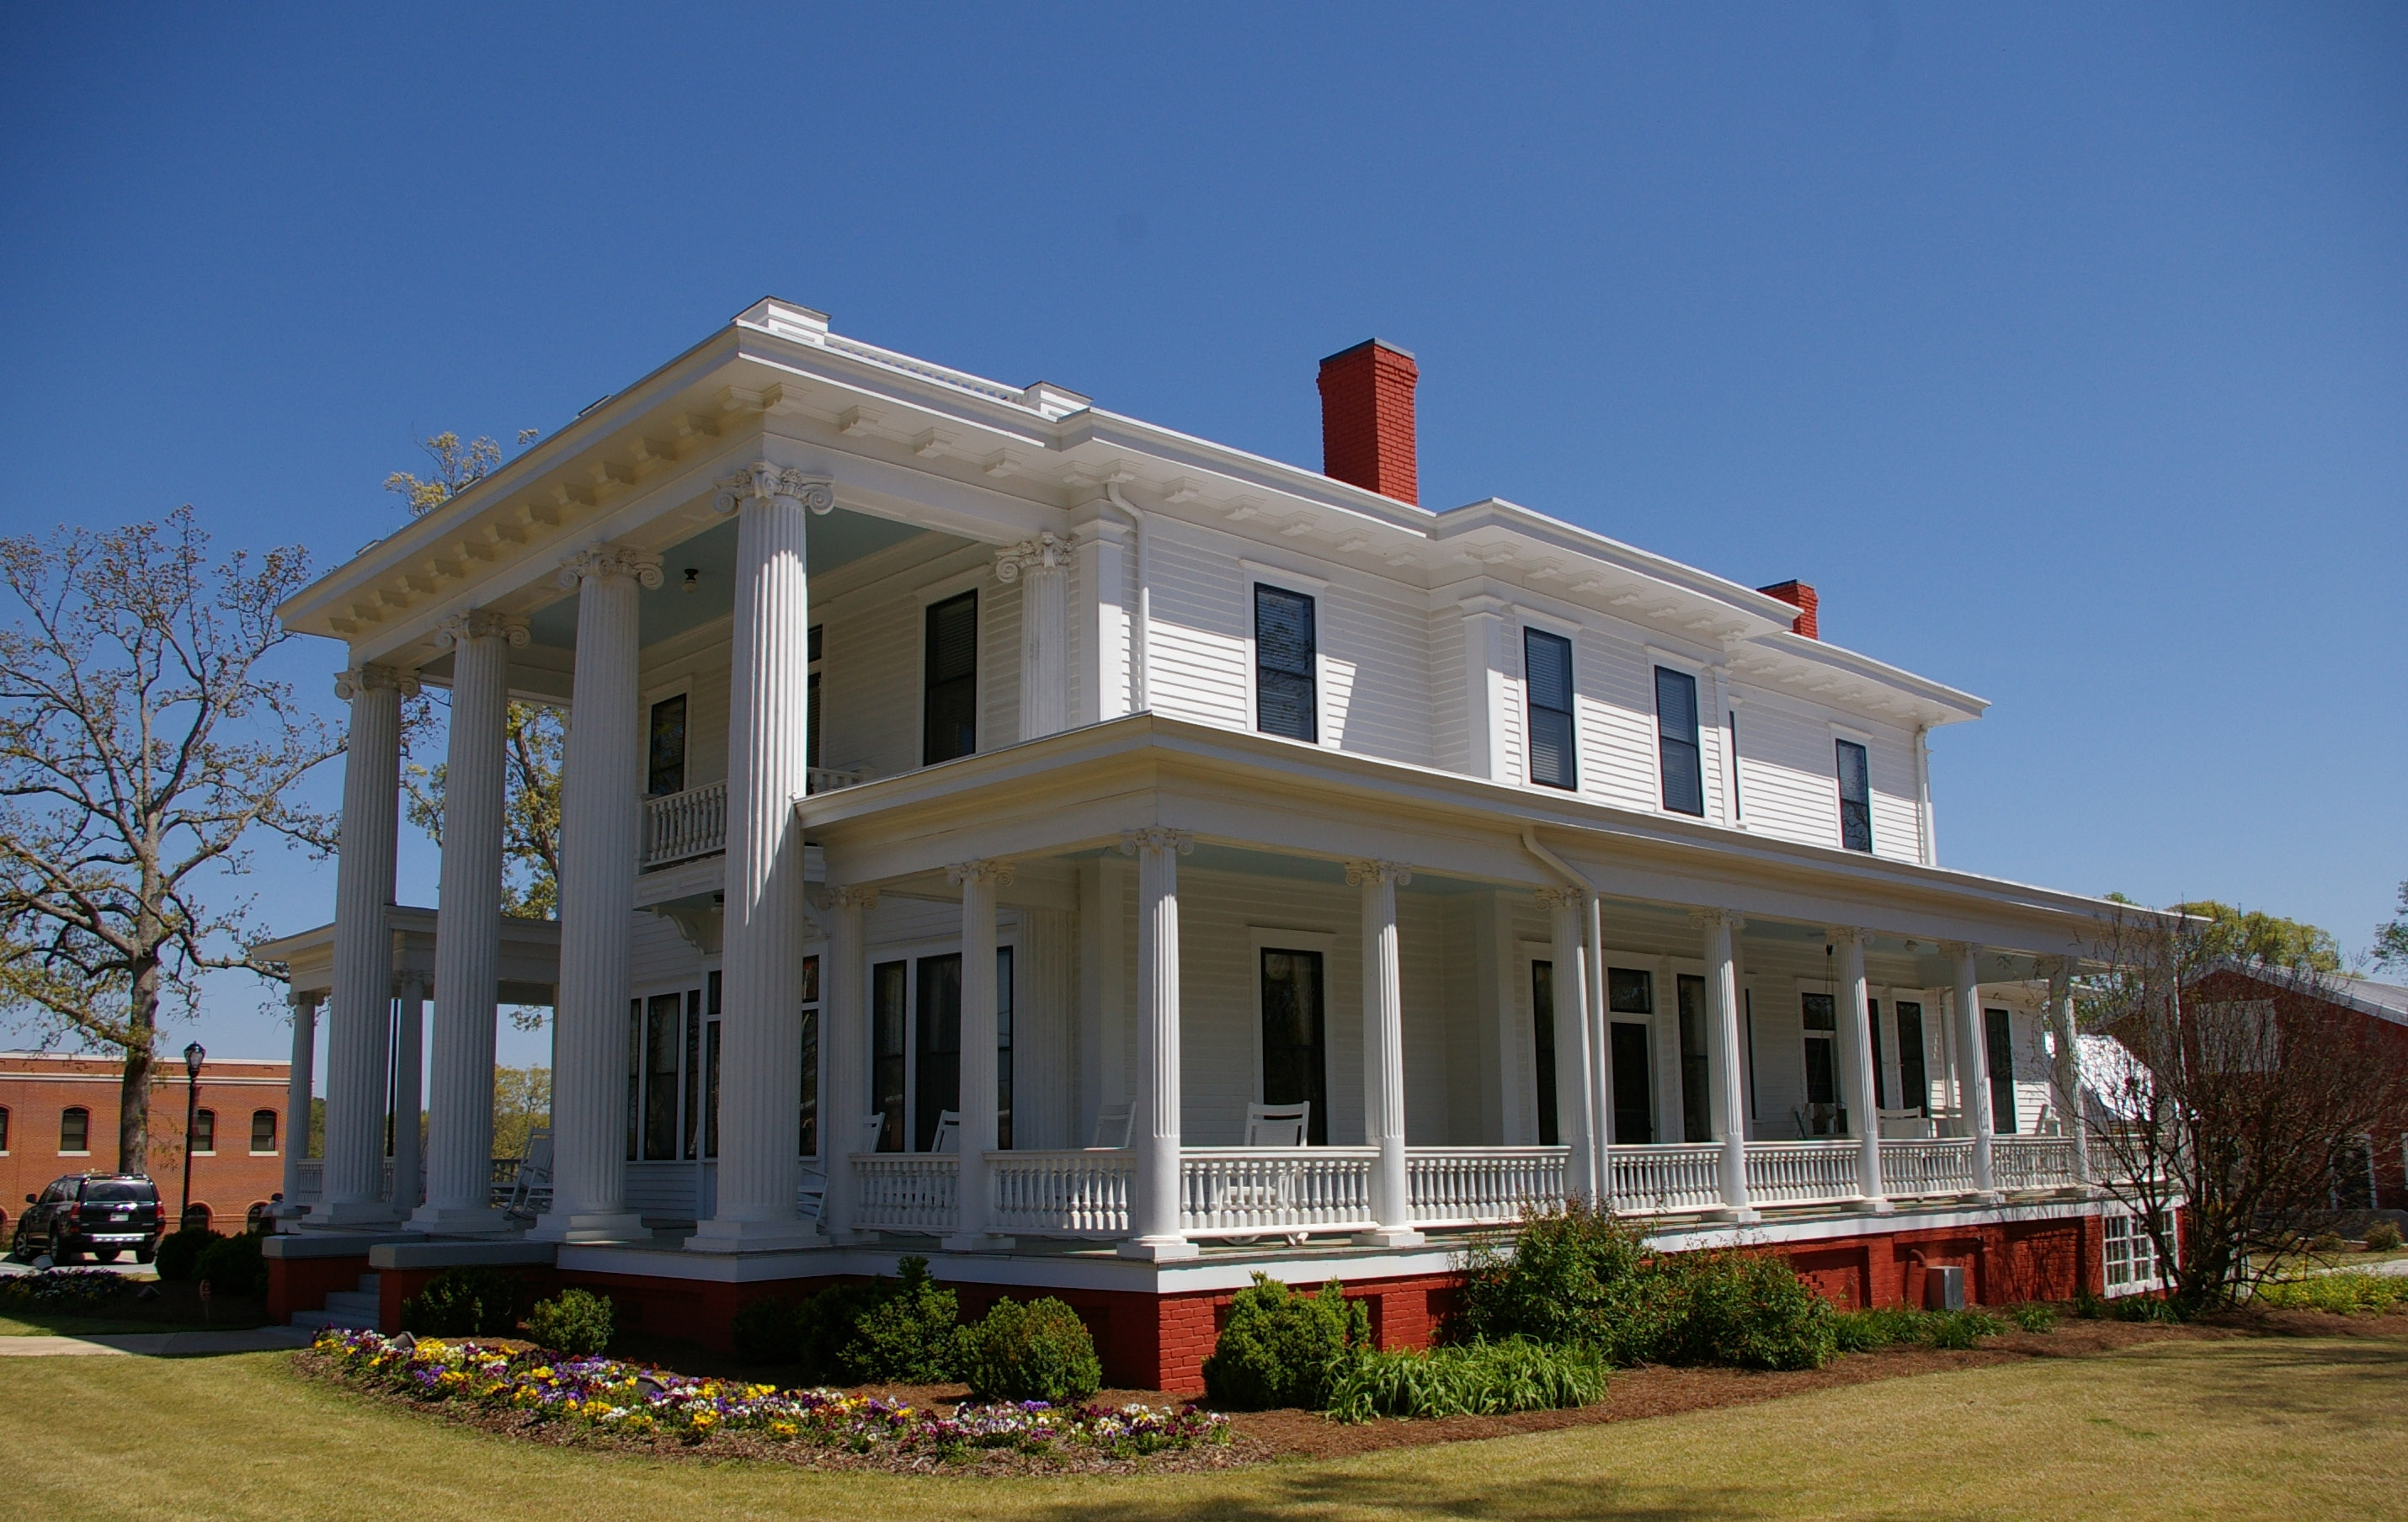 The W. H. Braselton Home